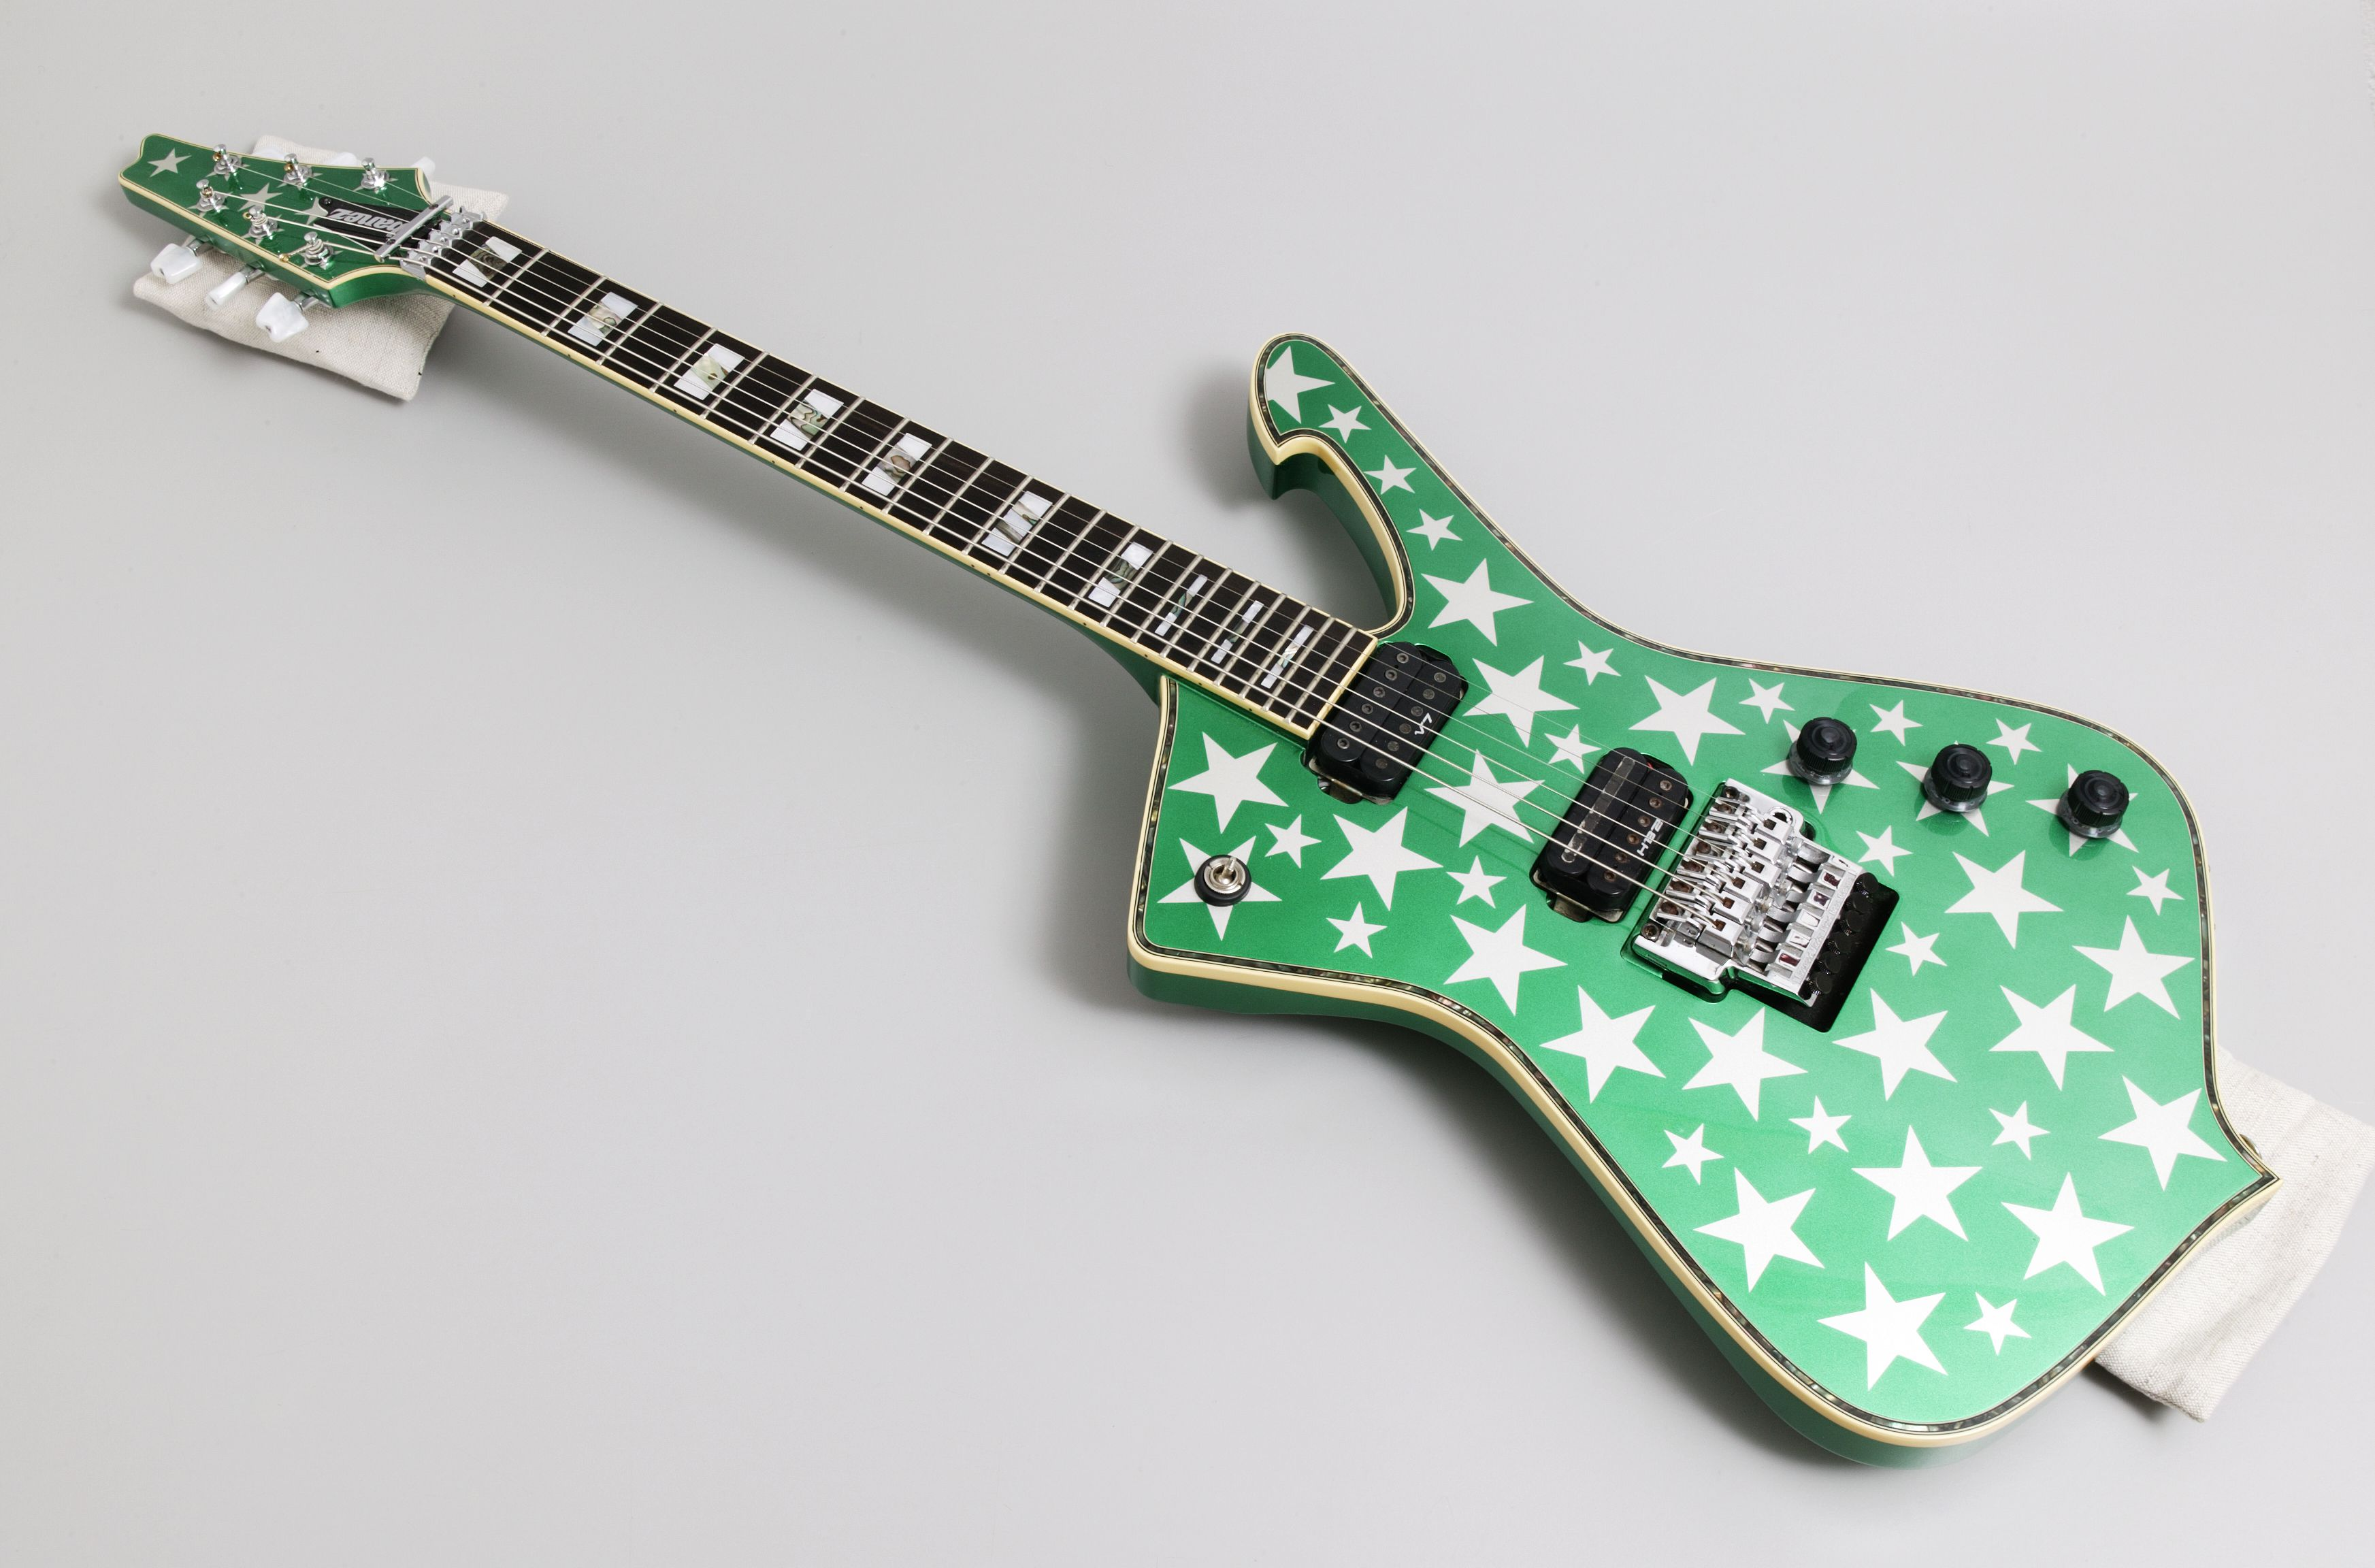 Iceman\' electric guitar used by NoKTuRNL - MAAS Collection